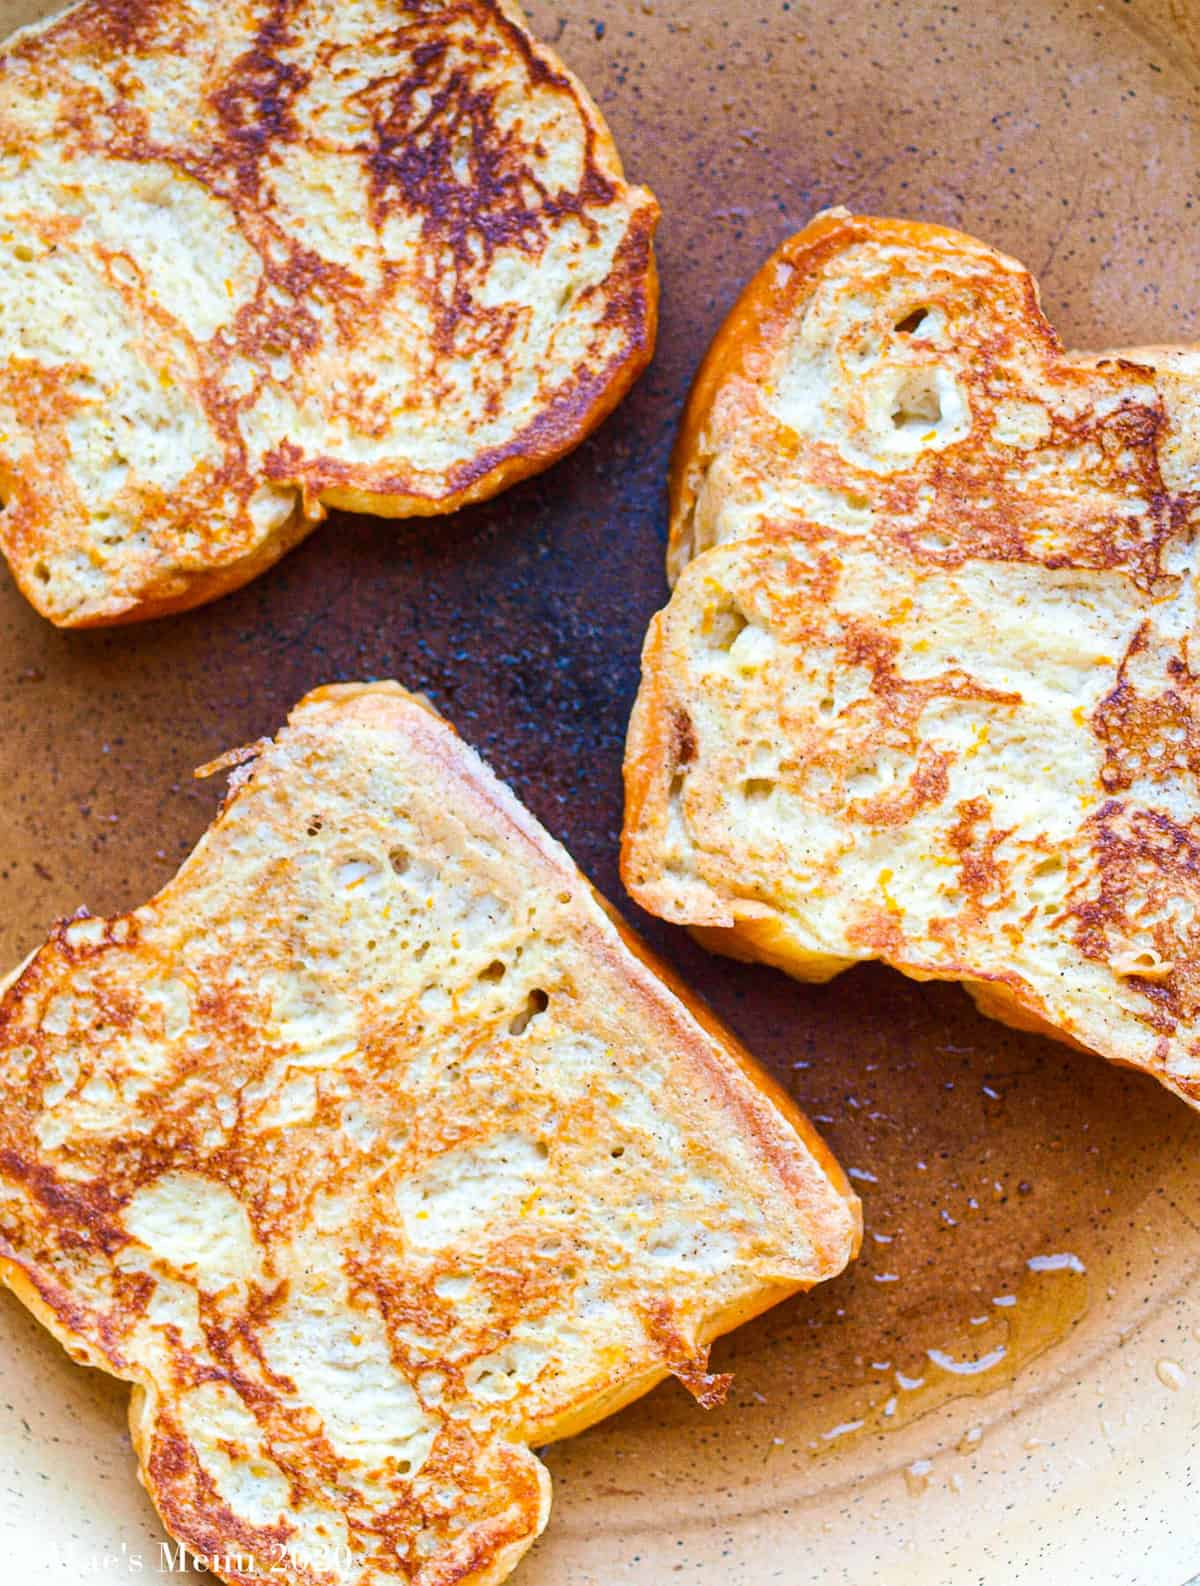 3 pieces of french toast cooking on a non-stick skillet